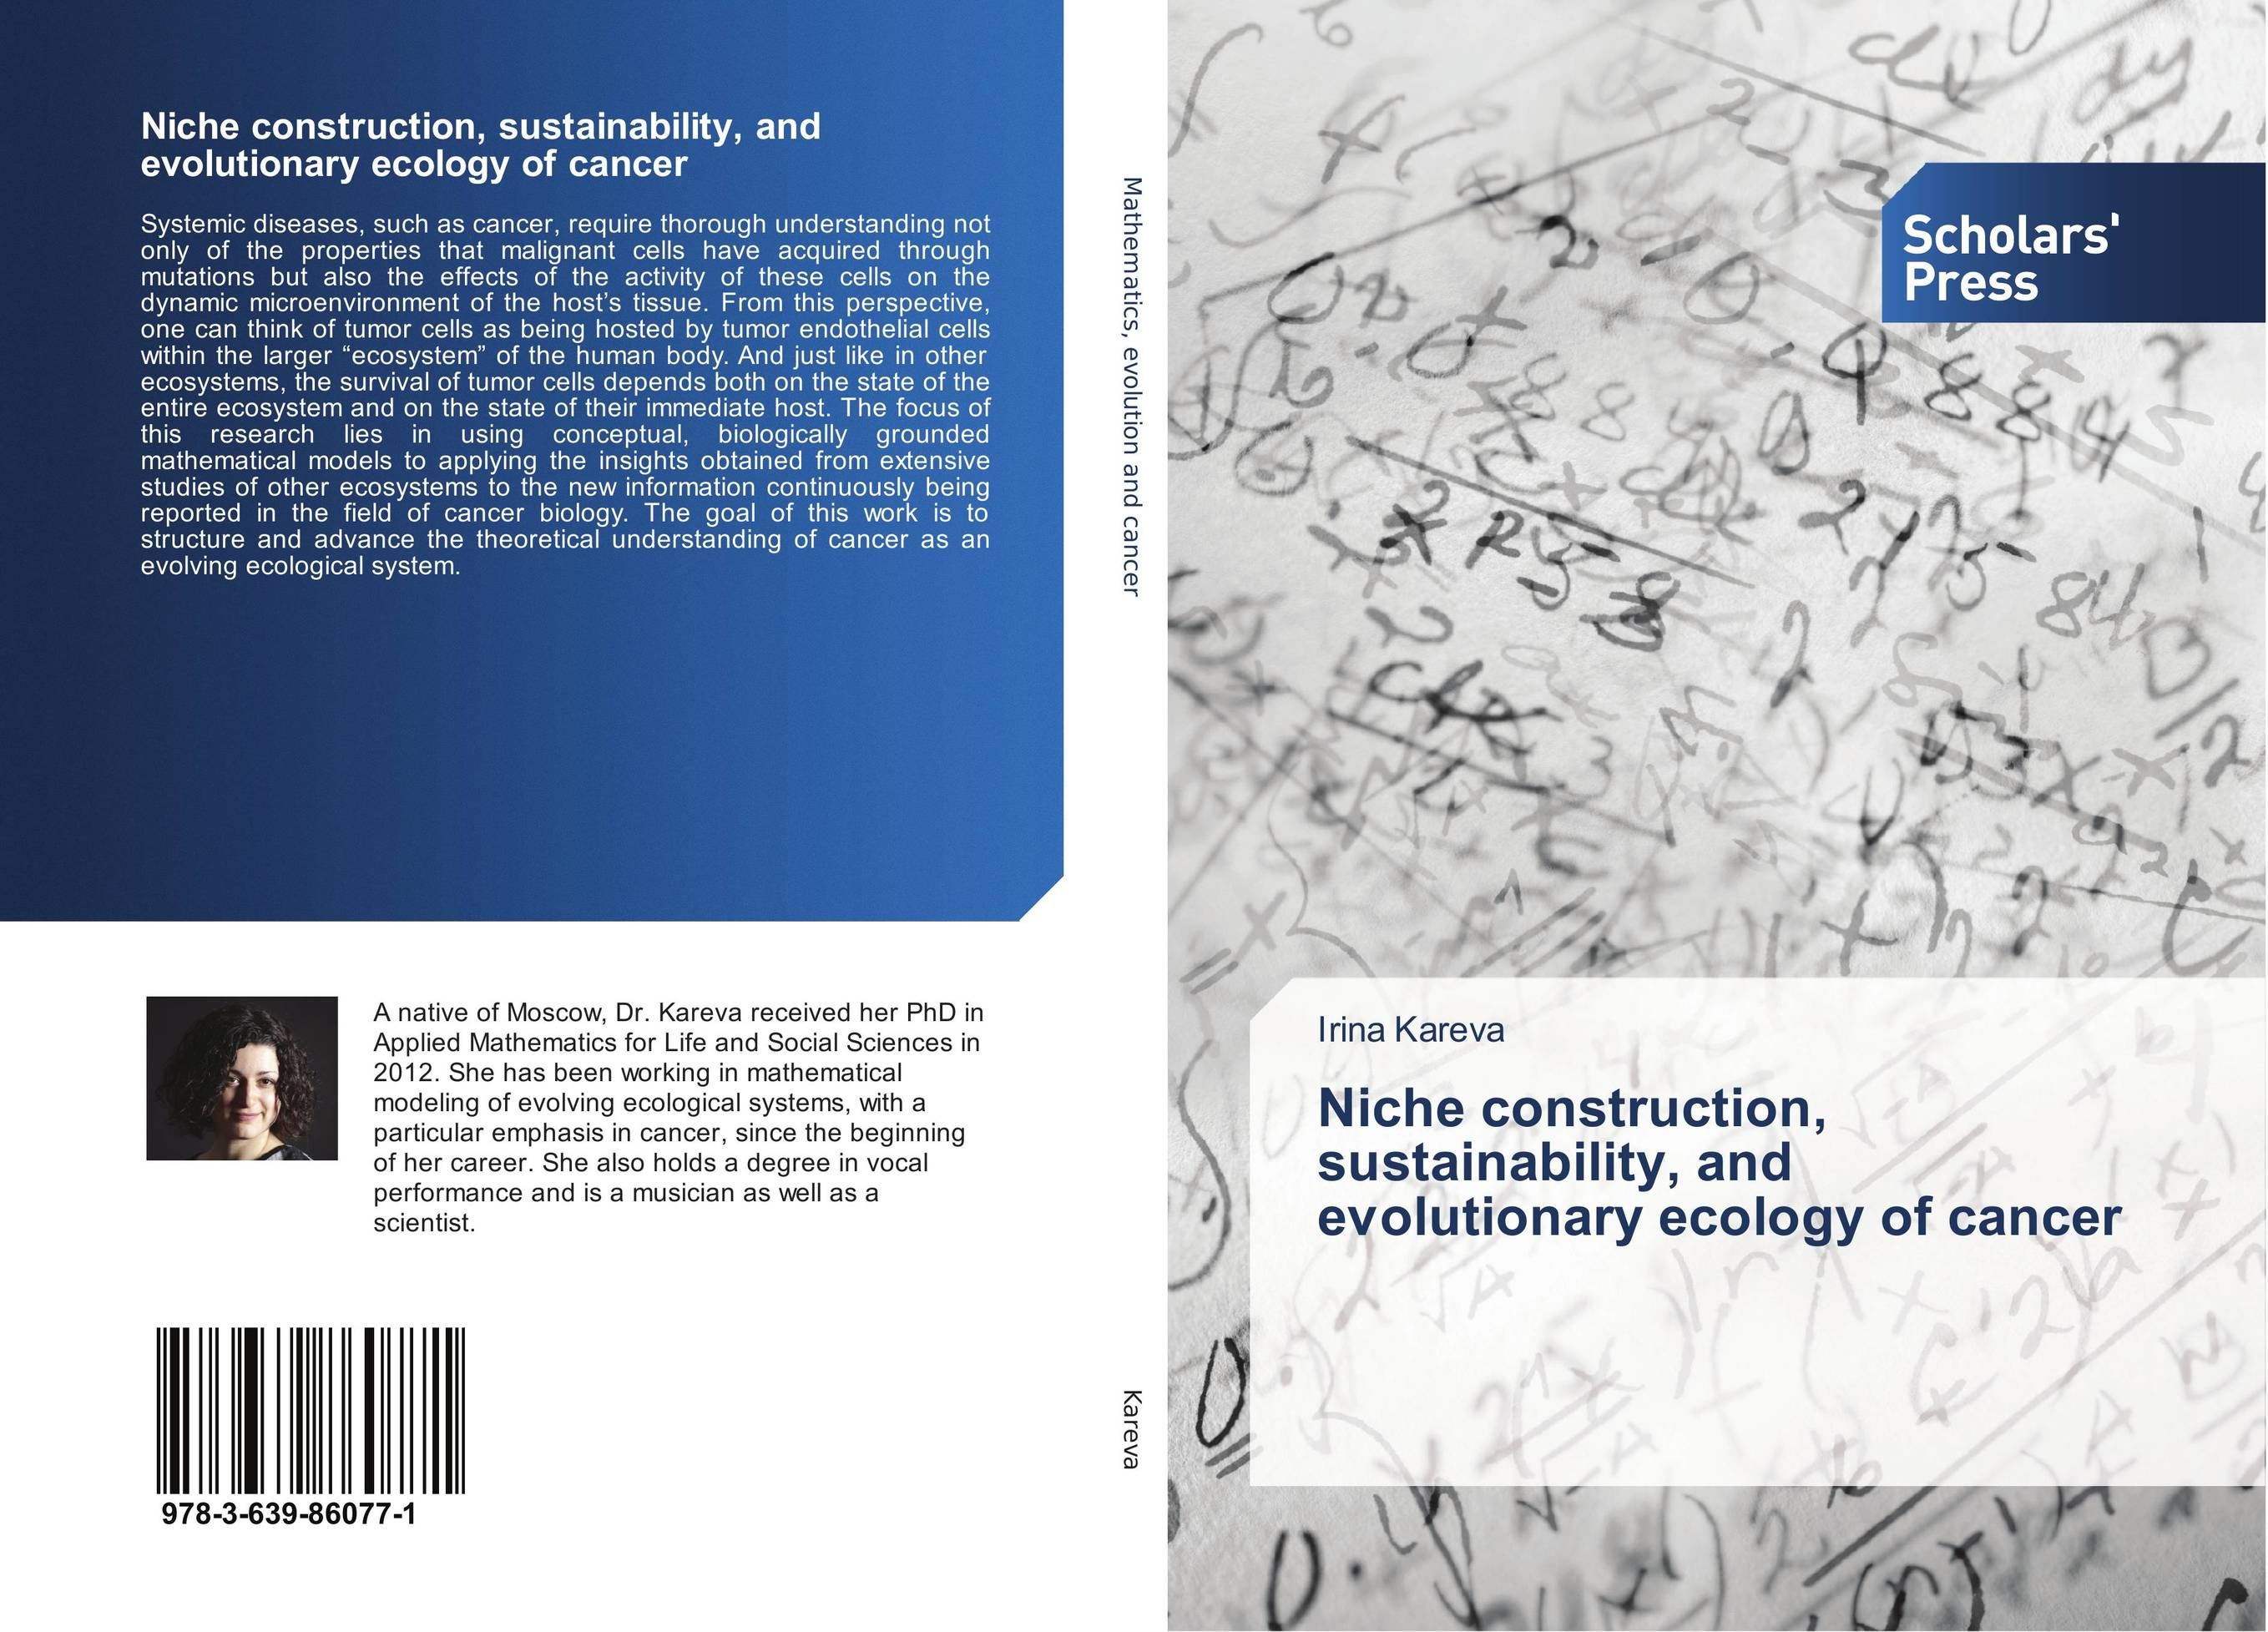 Niche construction, sustainability, and evolutionary ecology of cancer evolutionary ecology of extinct brachiopods